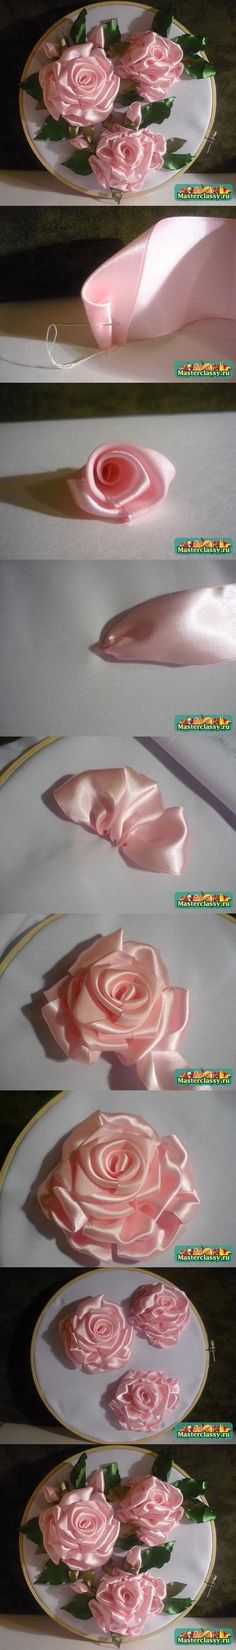 DIY Embroidery Ribbon Roses 2